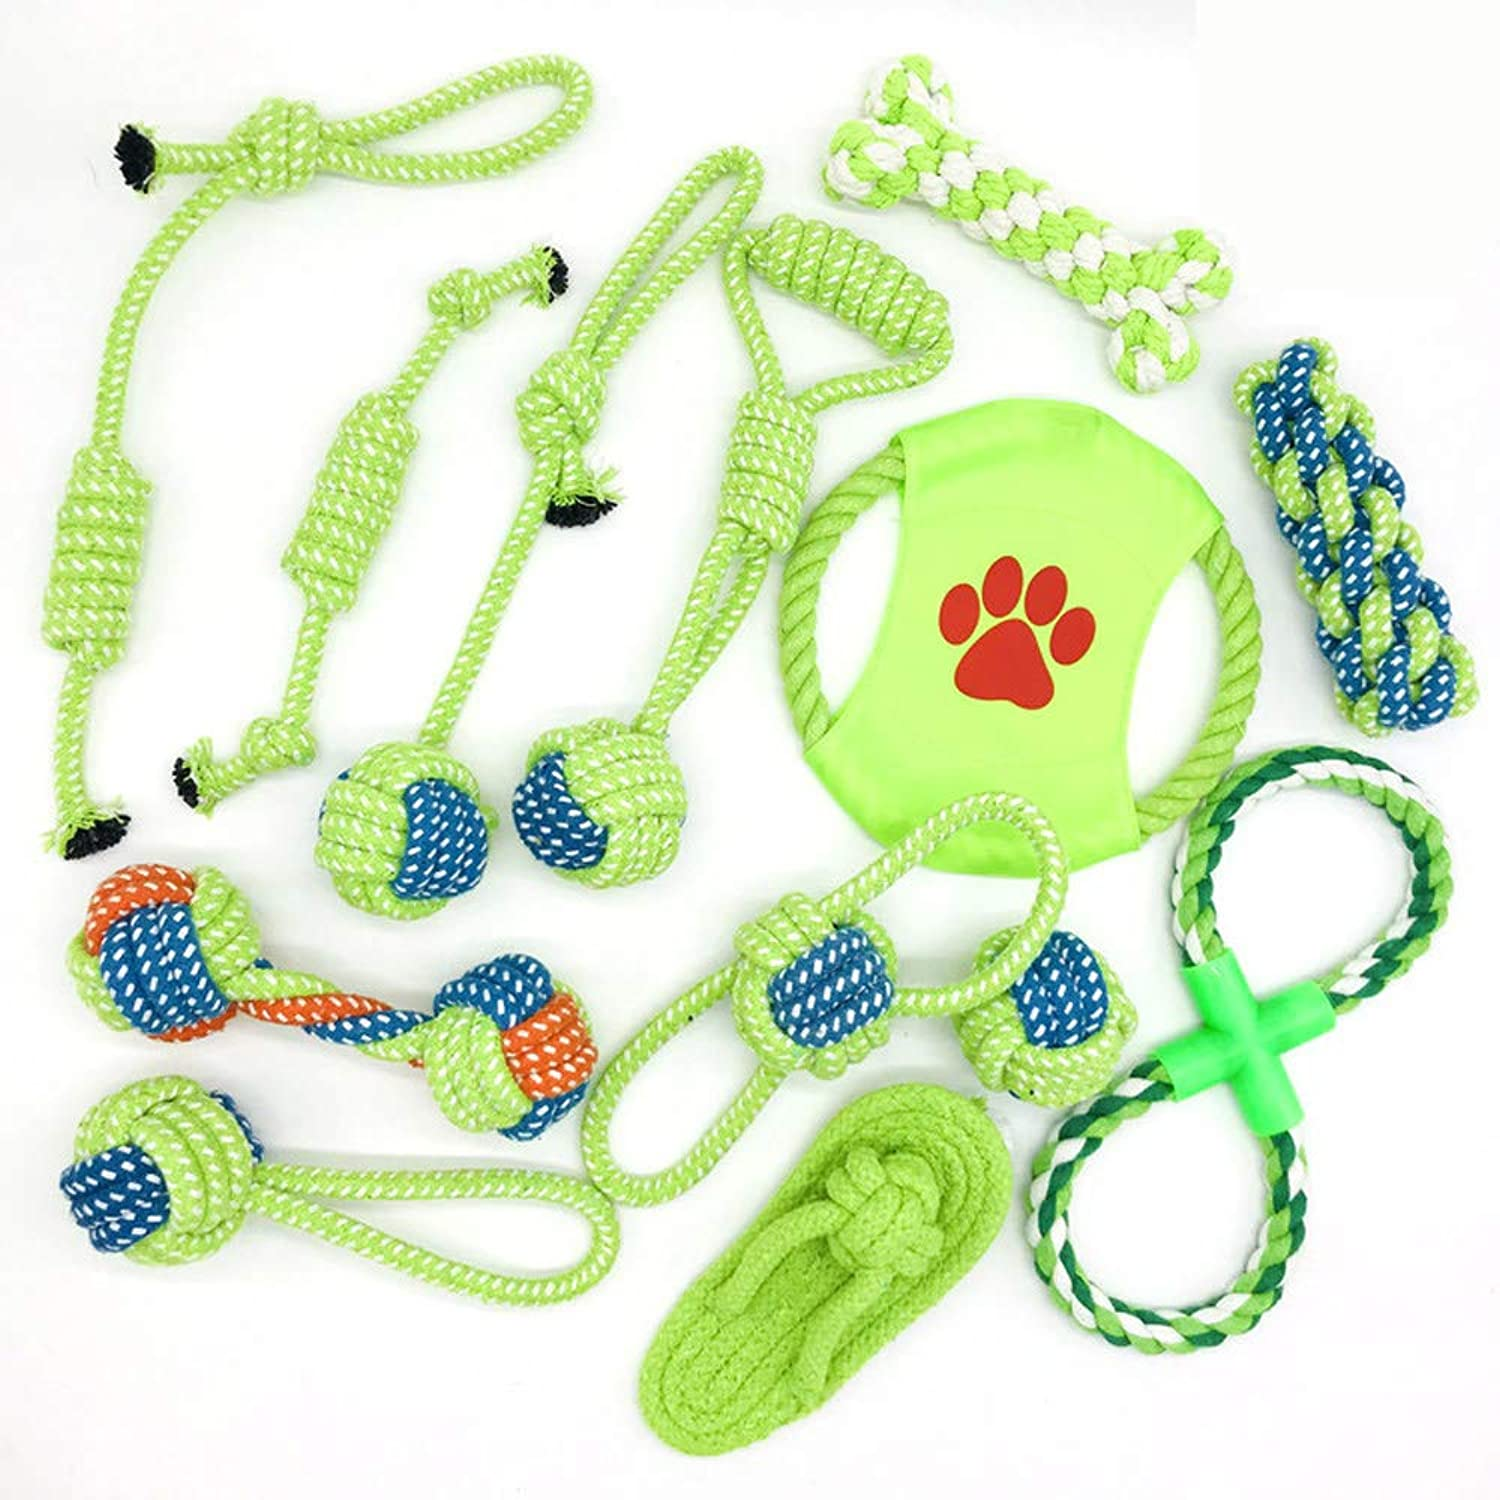 13Piece Dog Rope Toys Set, Pet Chew Rope Toys Puppy Braided Cotton Toys, NonToxic Interactive Health Teeth Cleaning for Small Medium Large Dogs